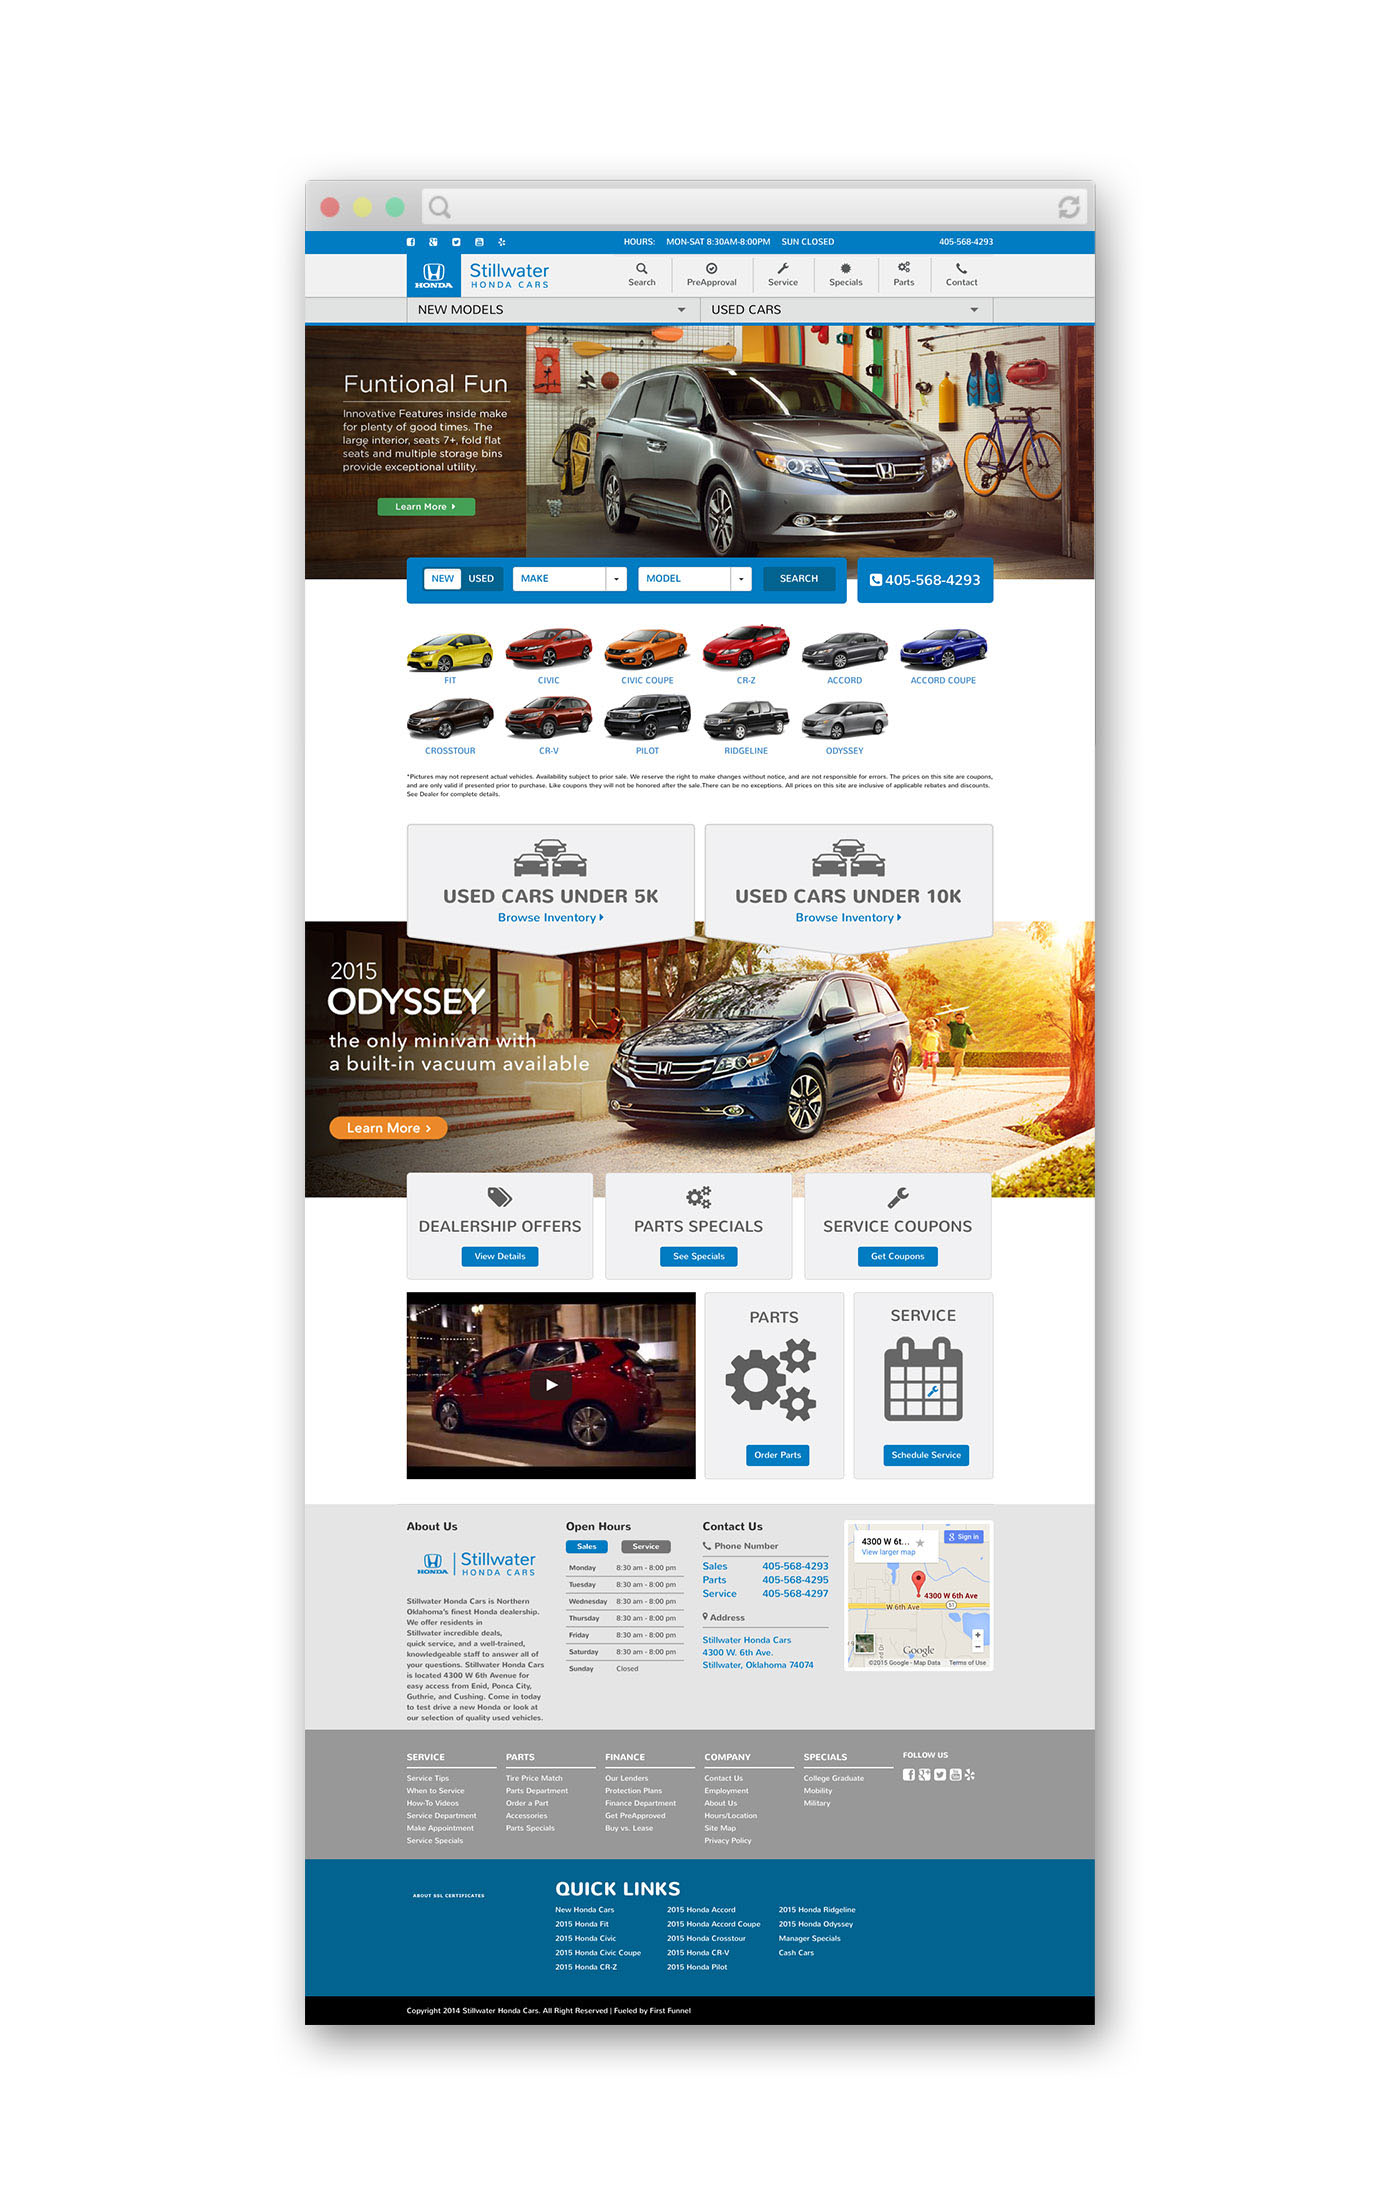 Stillwater Honda Cars - Website Design